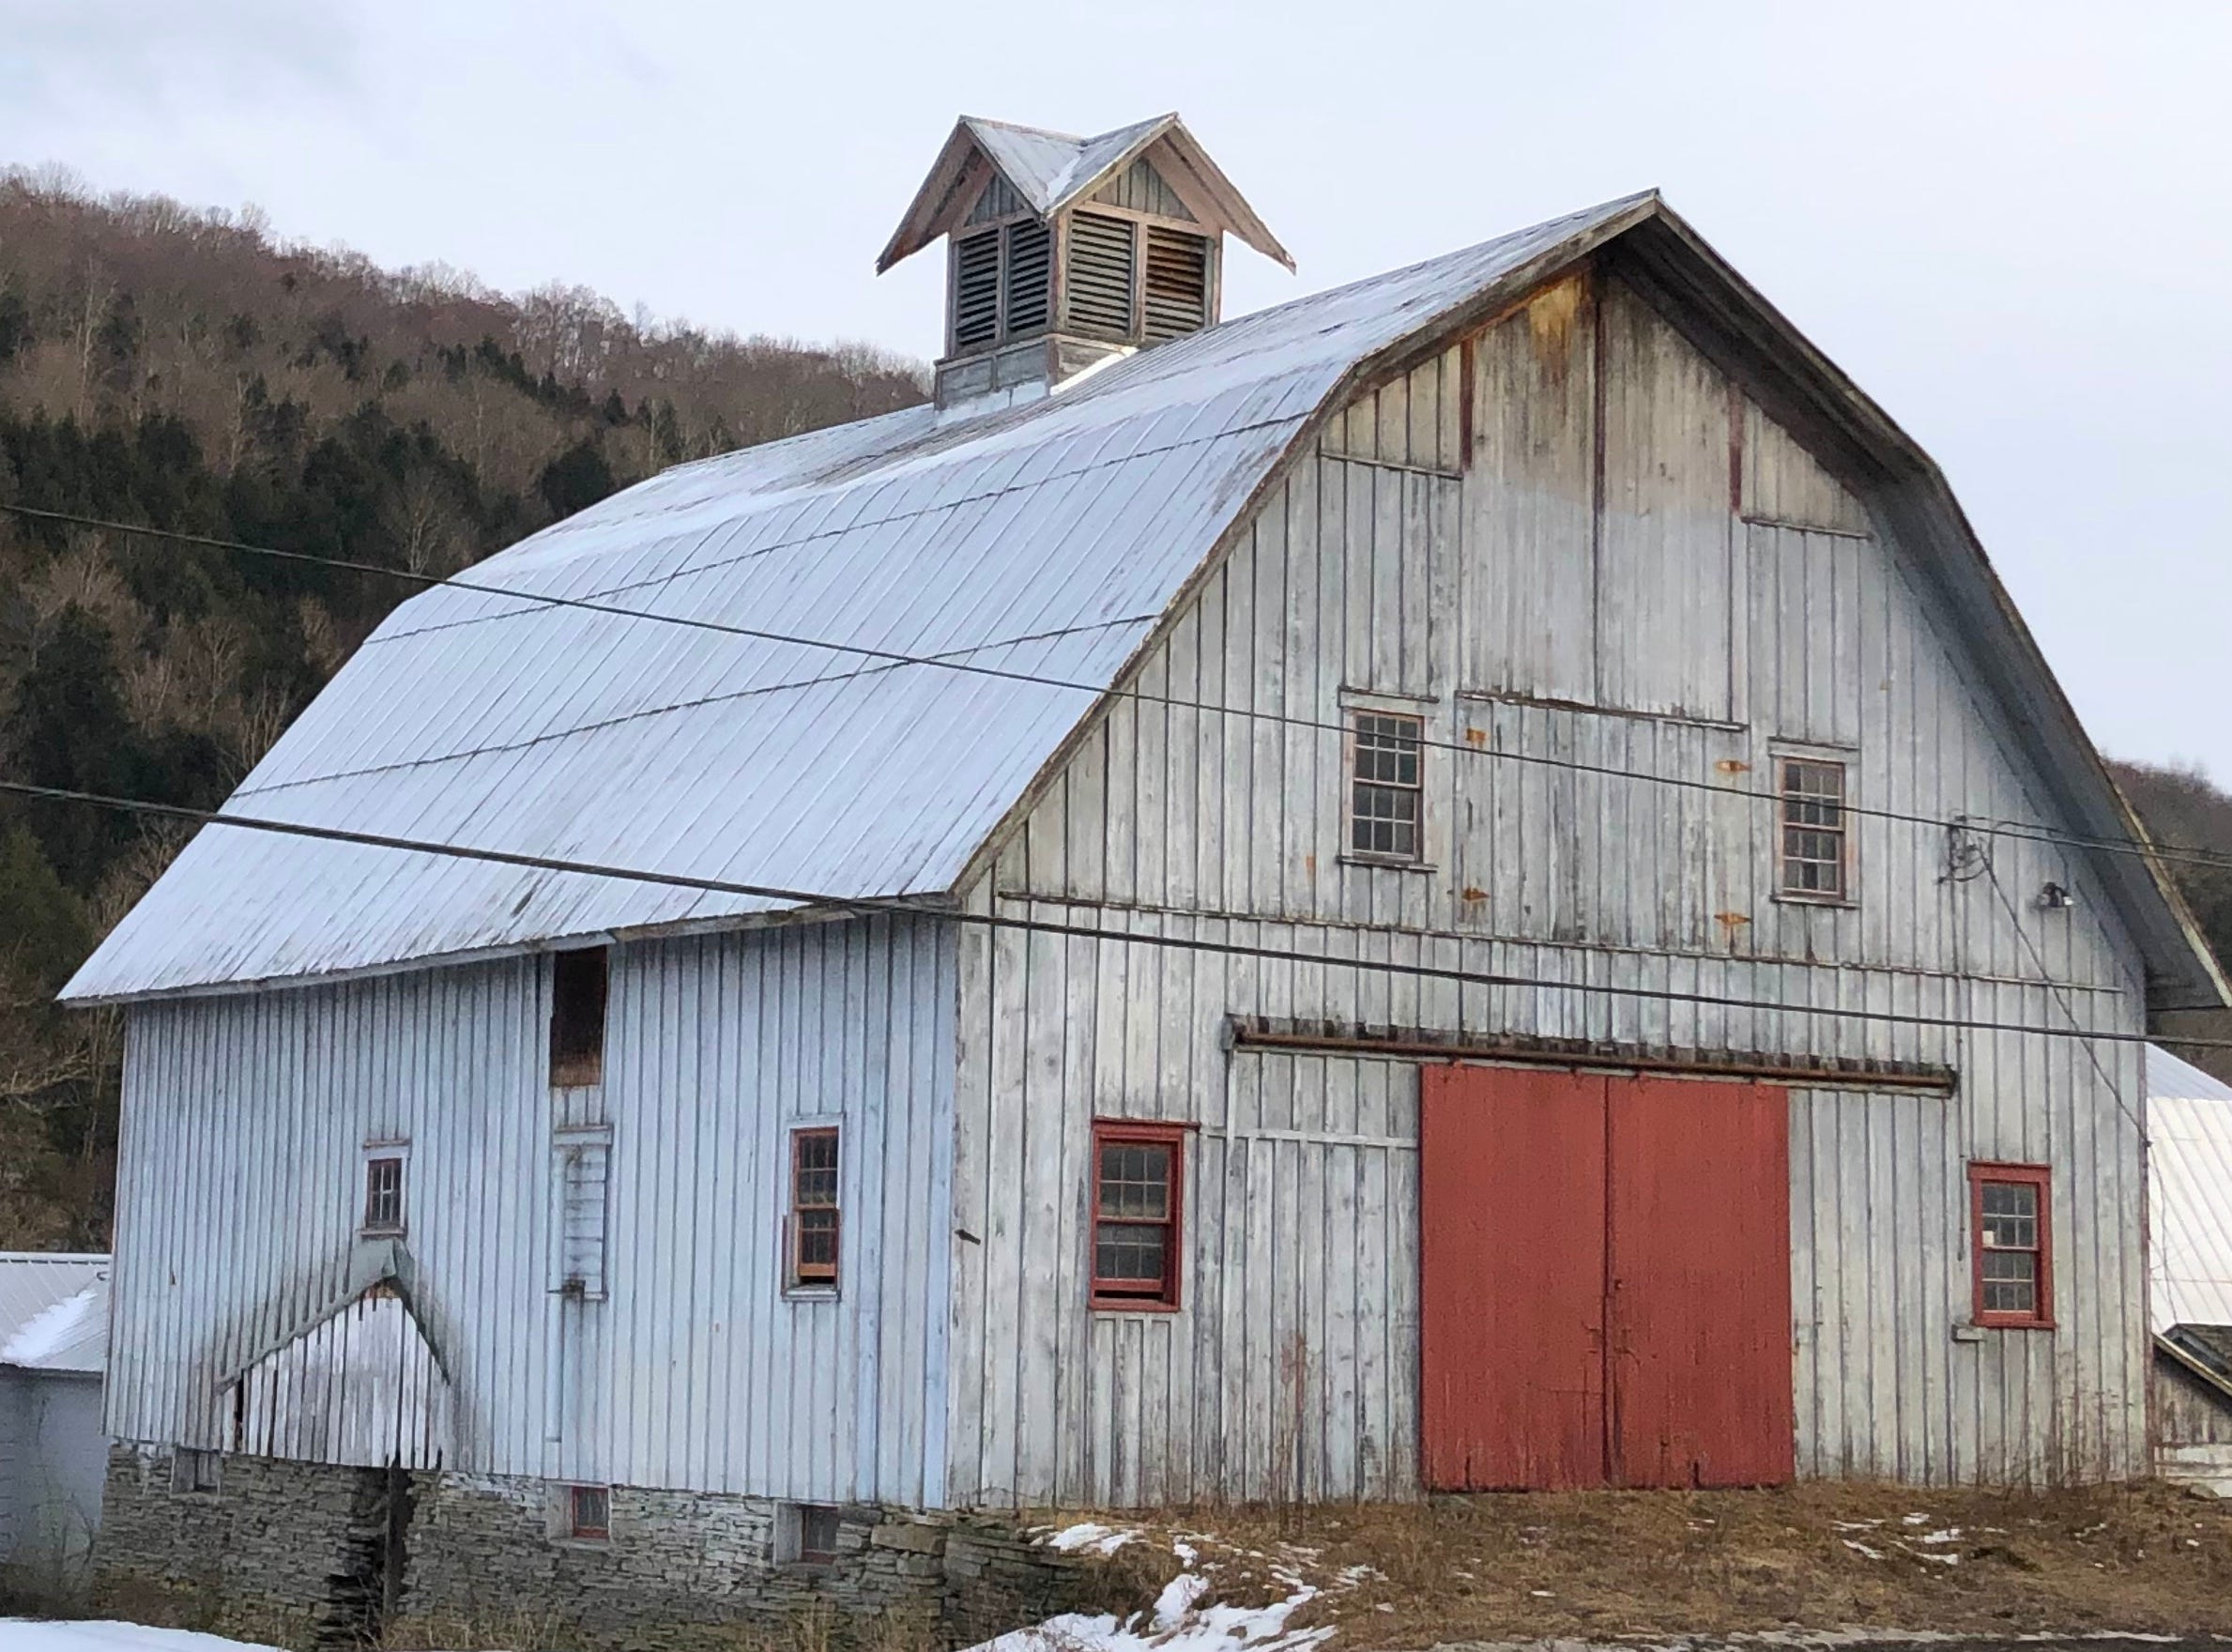 A barn in Montrose, PA.